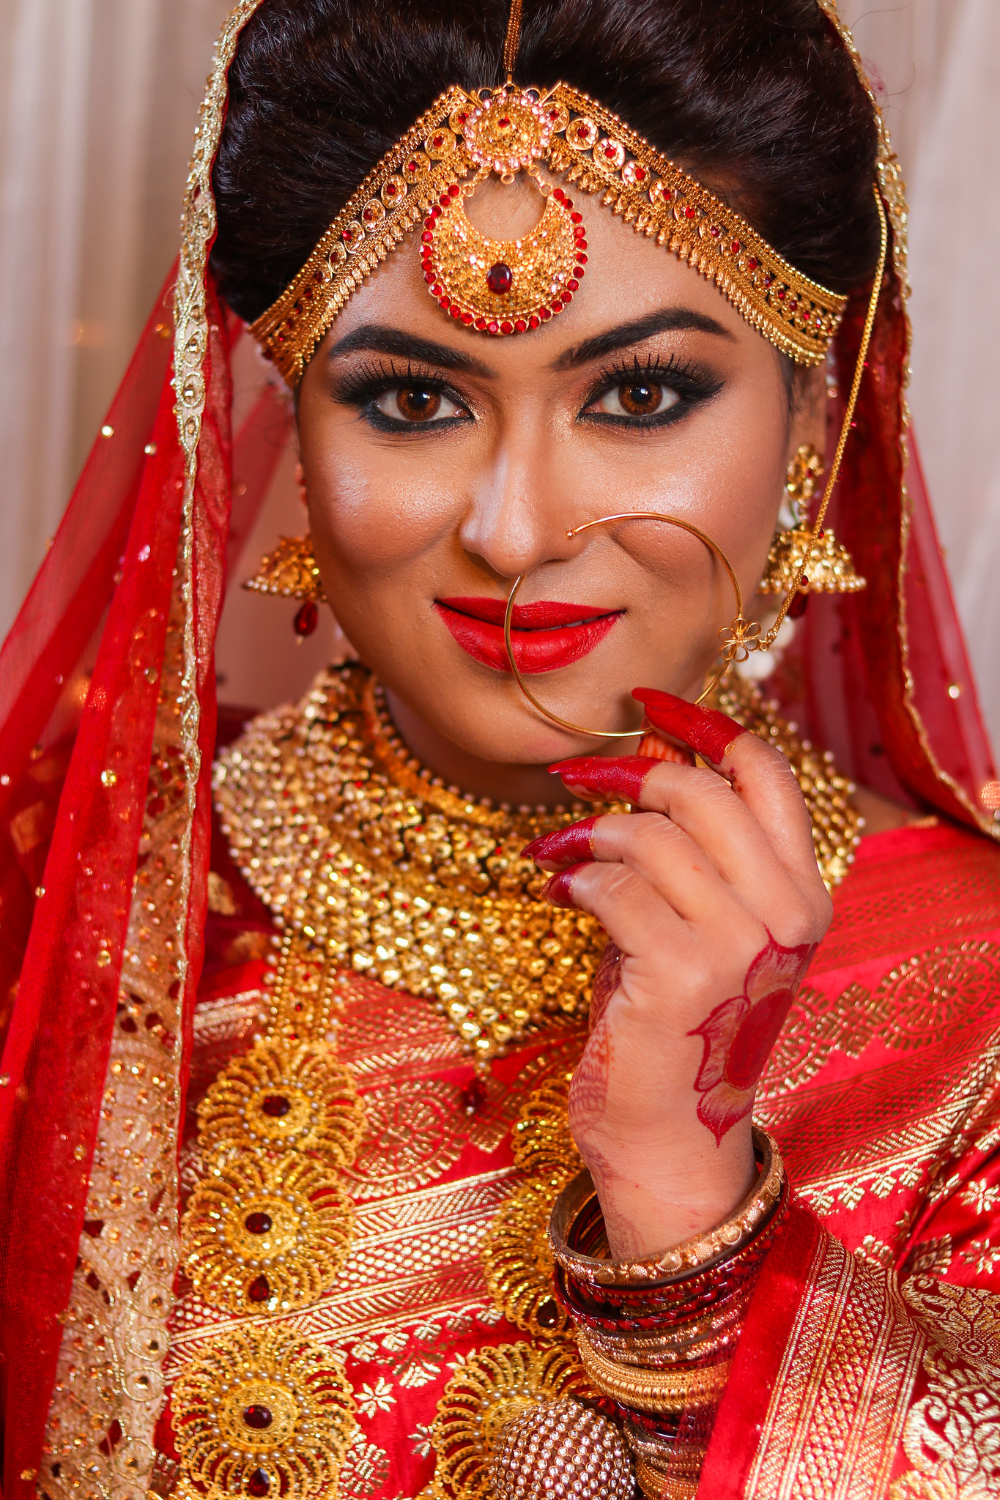 Pin by Sunnyrajf on Bangladeshi Brides Festival captain